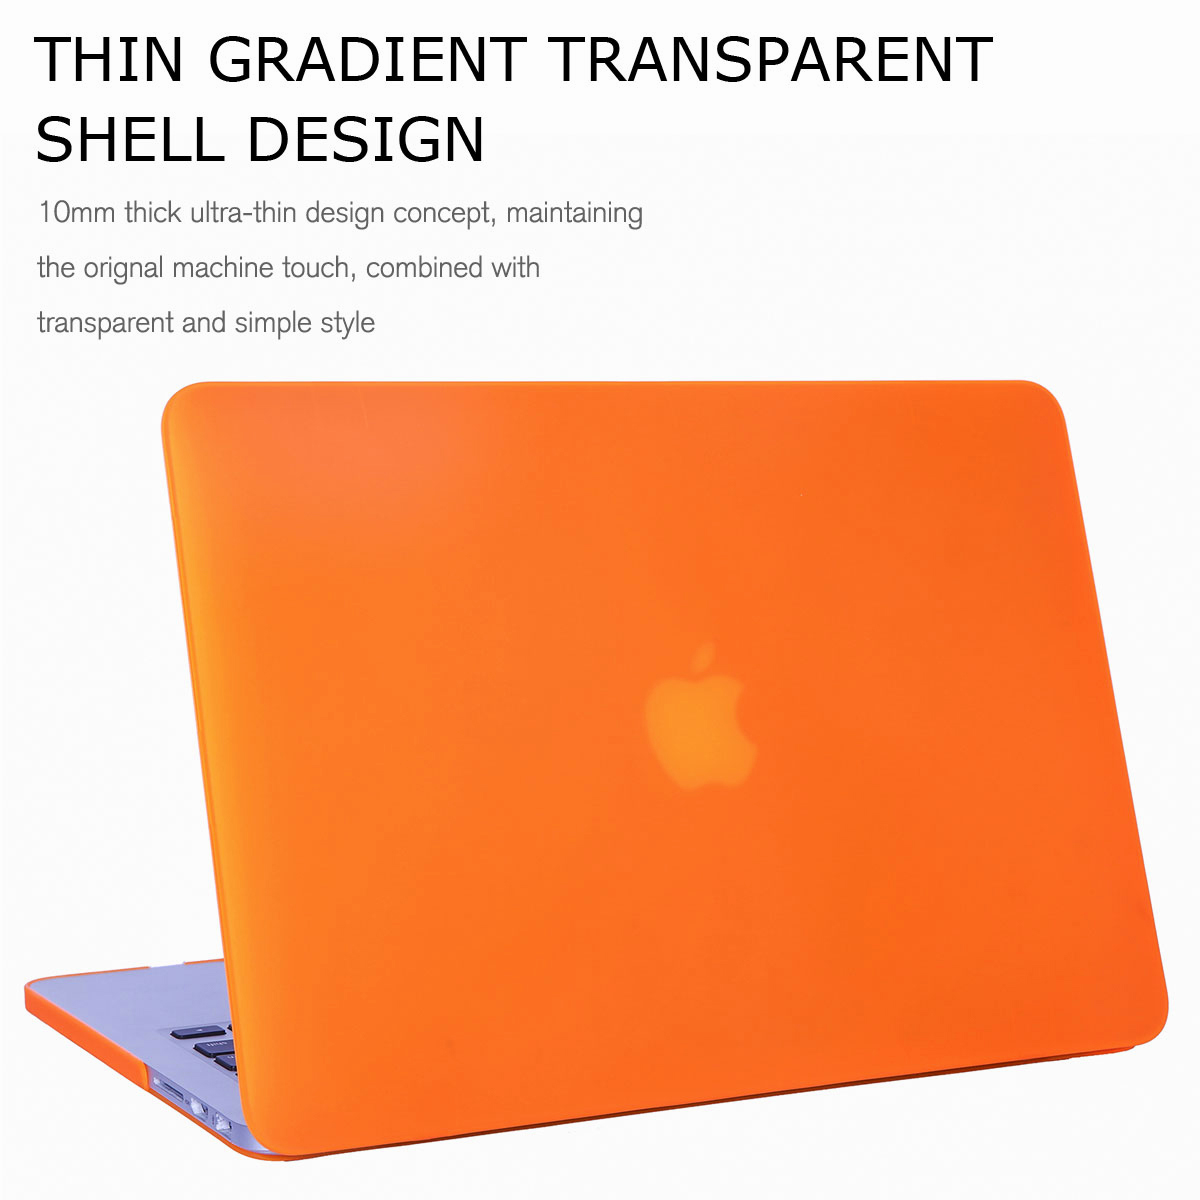 Matte-Rubberized-Hard-Case-Cover-Shell-For-Macbook-Pro-Retina-12-039-039-13-039-039-15-Inch thumbnail 27